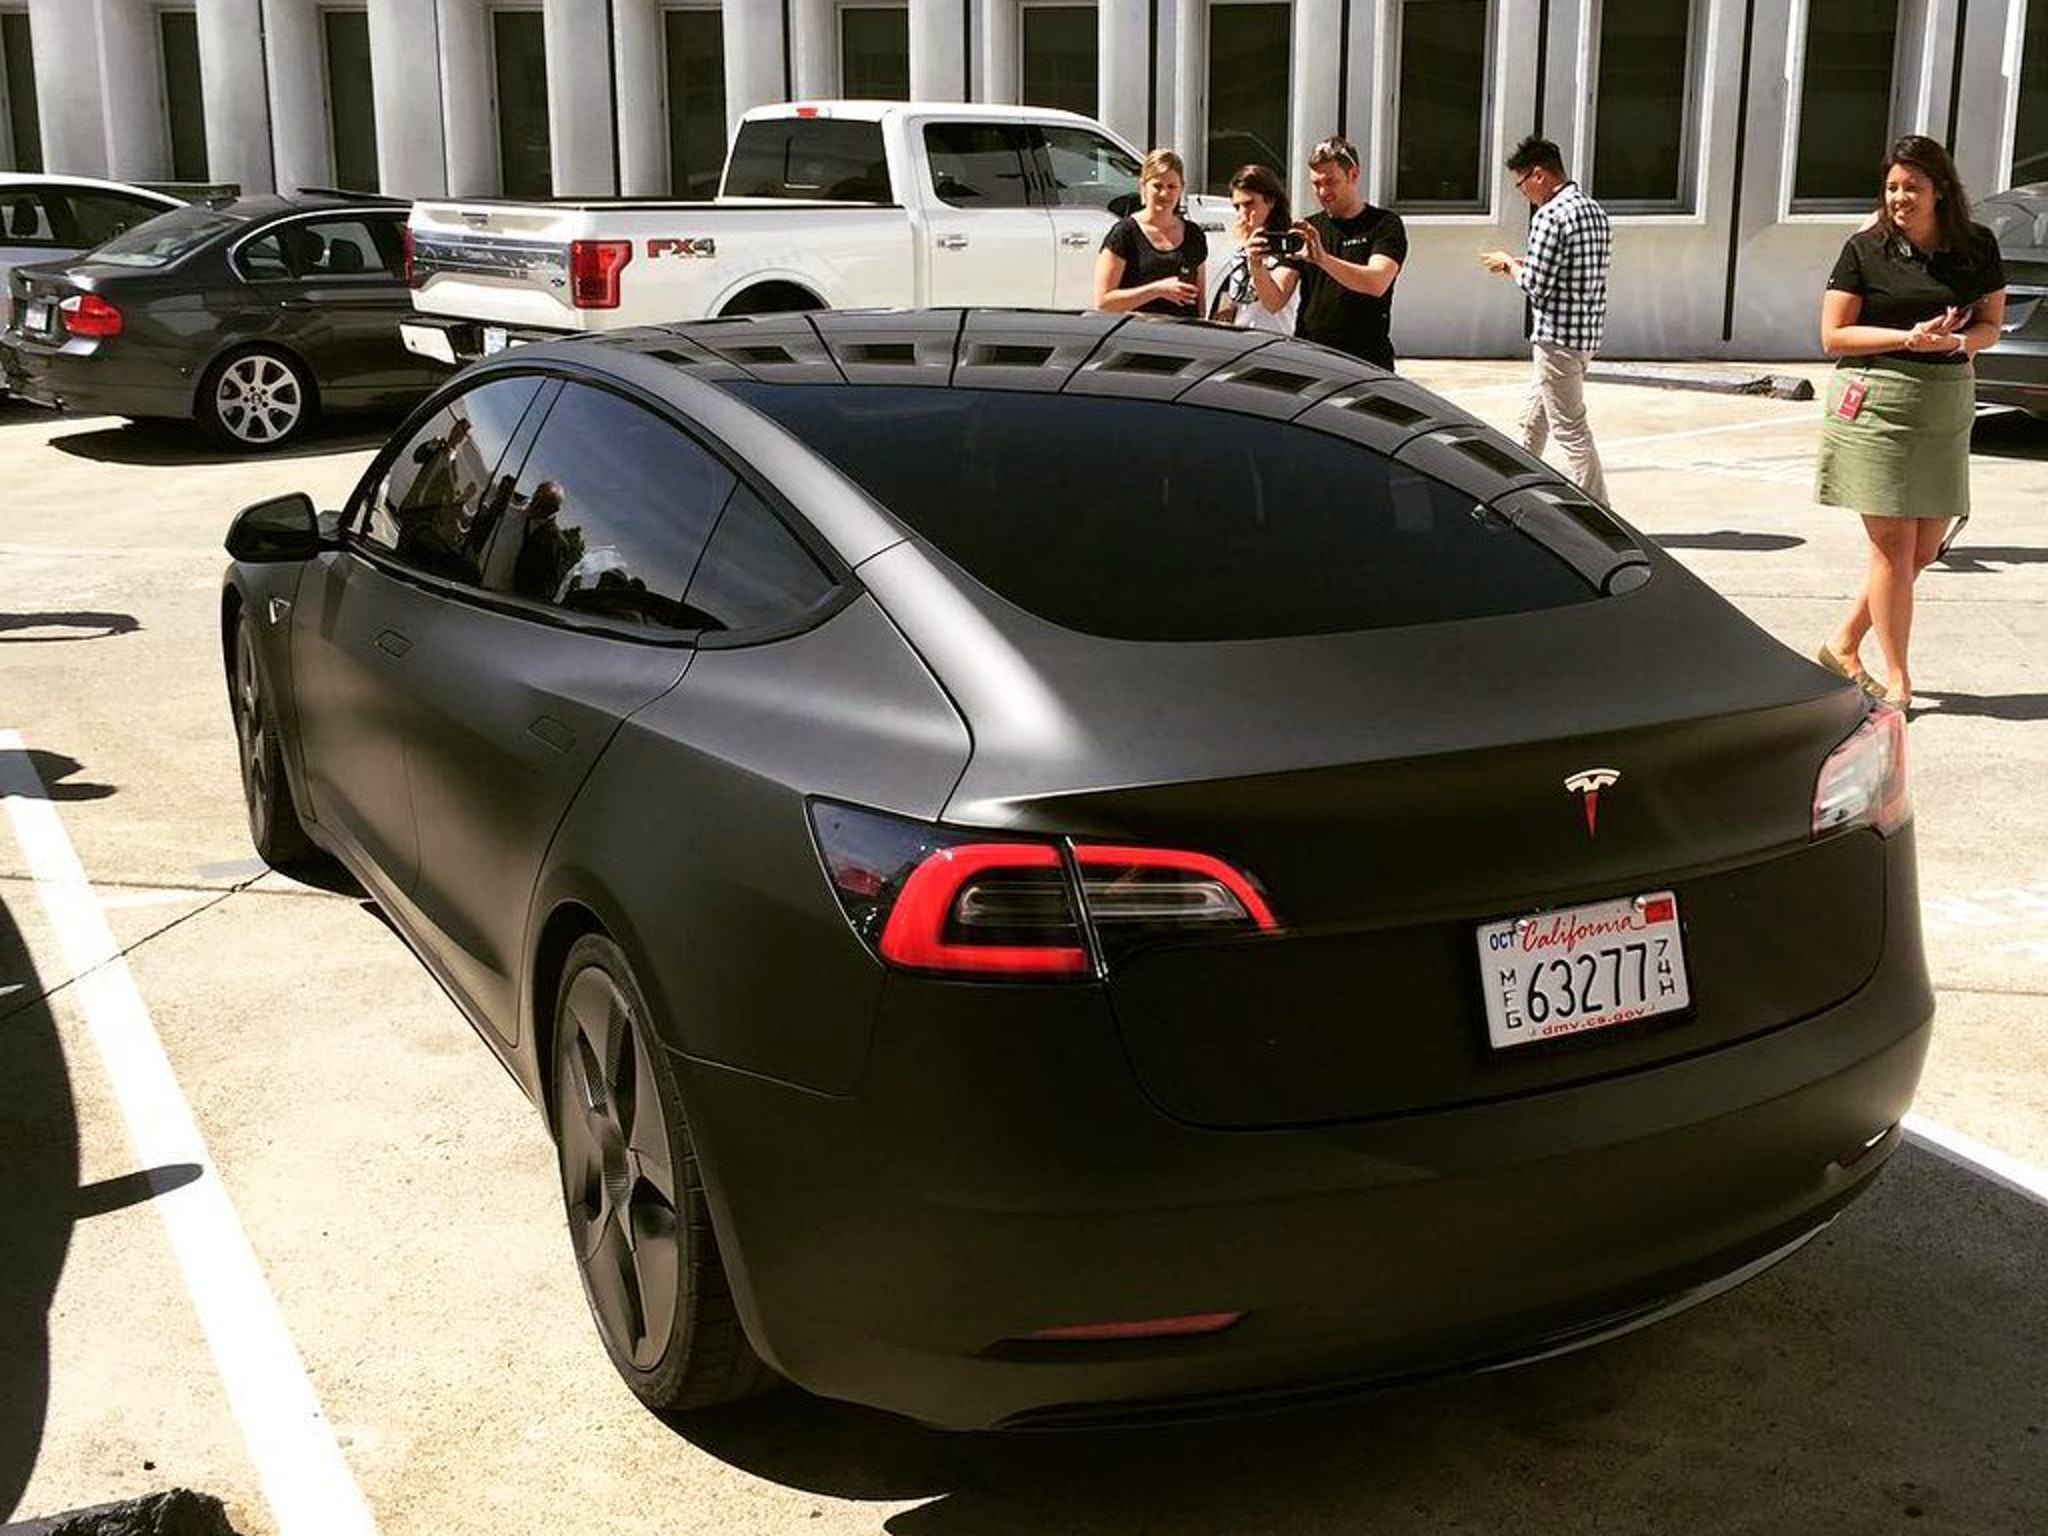 Feast Your Eyes On A Murdered Out Tesla Model 3 Prowling